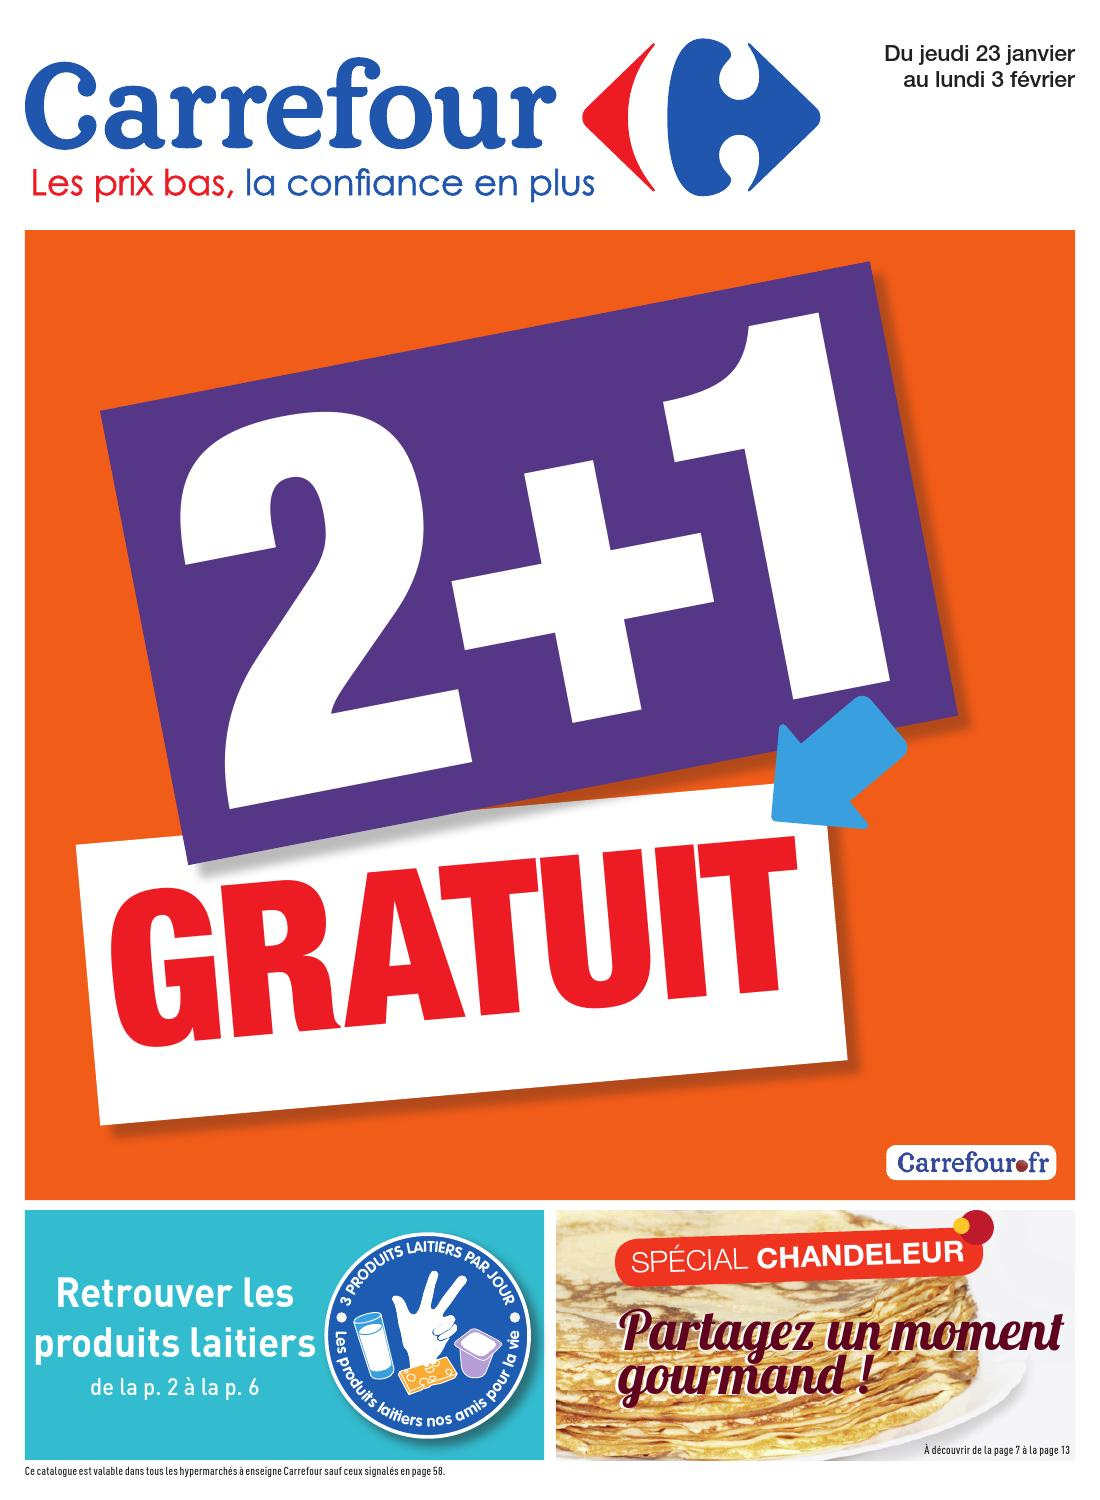 catalogue carrefour 23 01 3 02 2014